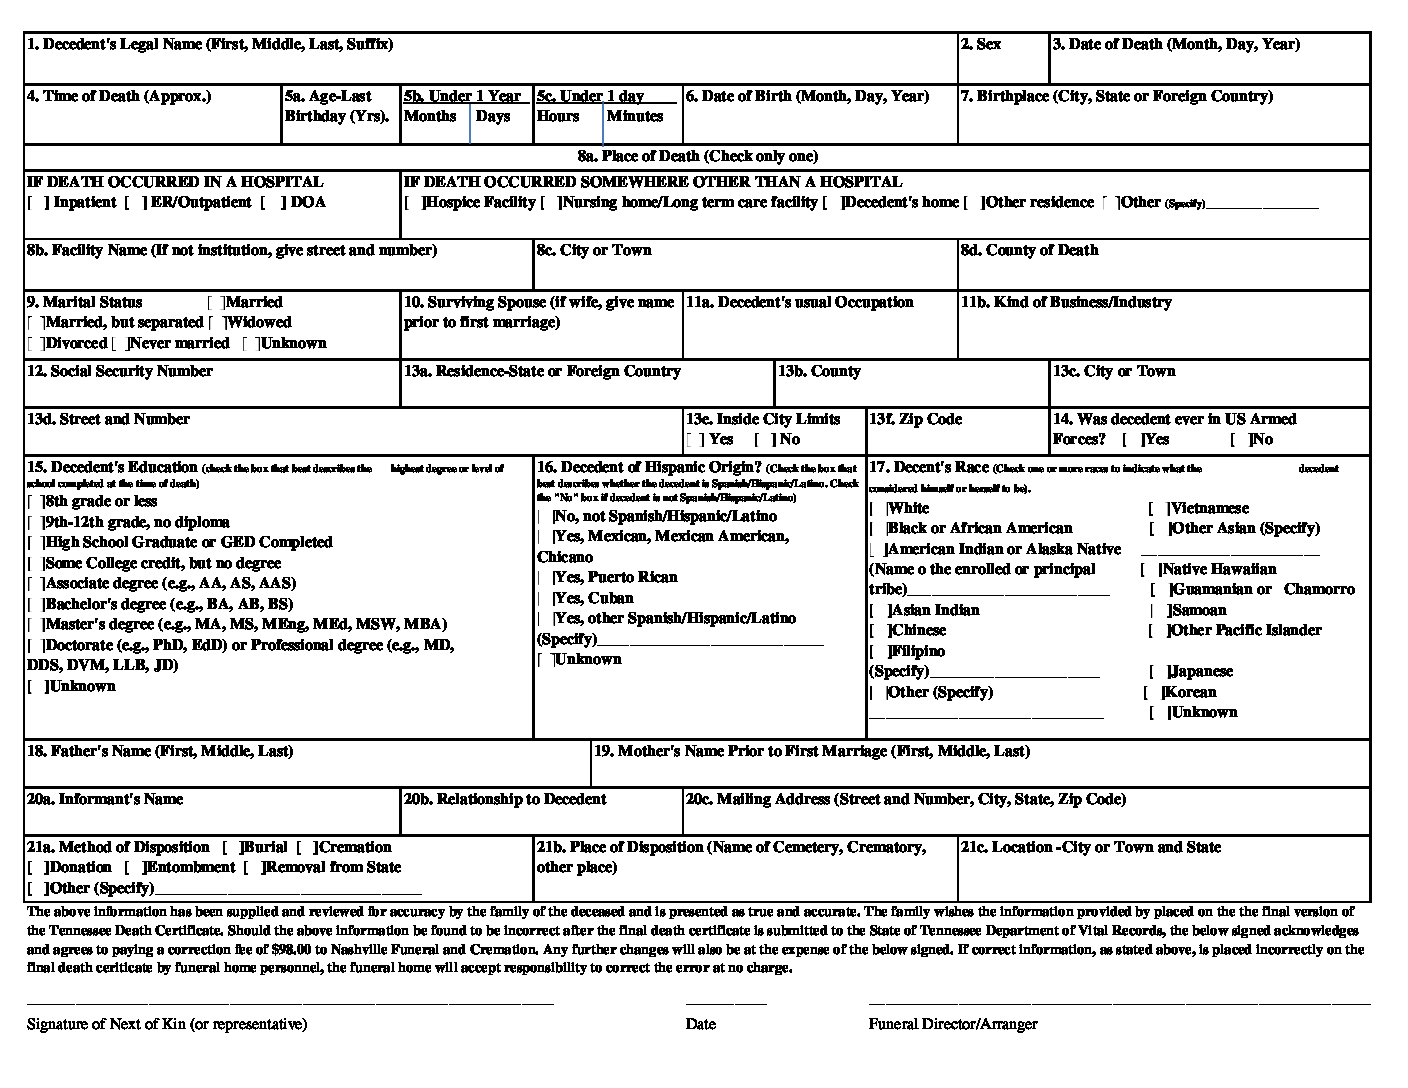 Download our Death Certificate order form - Nashville Funeral and Cremation